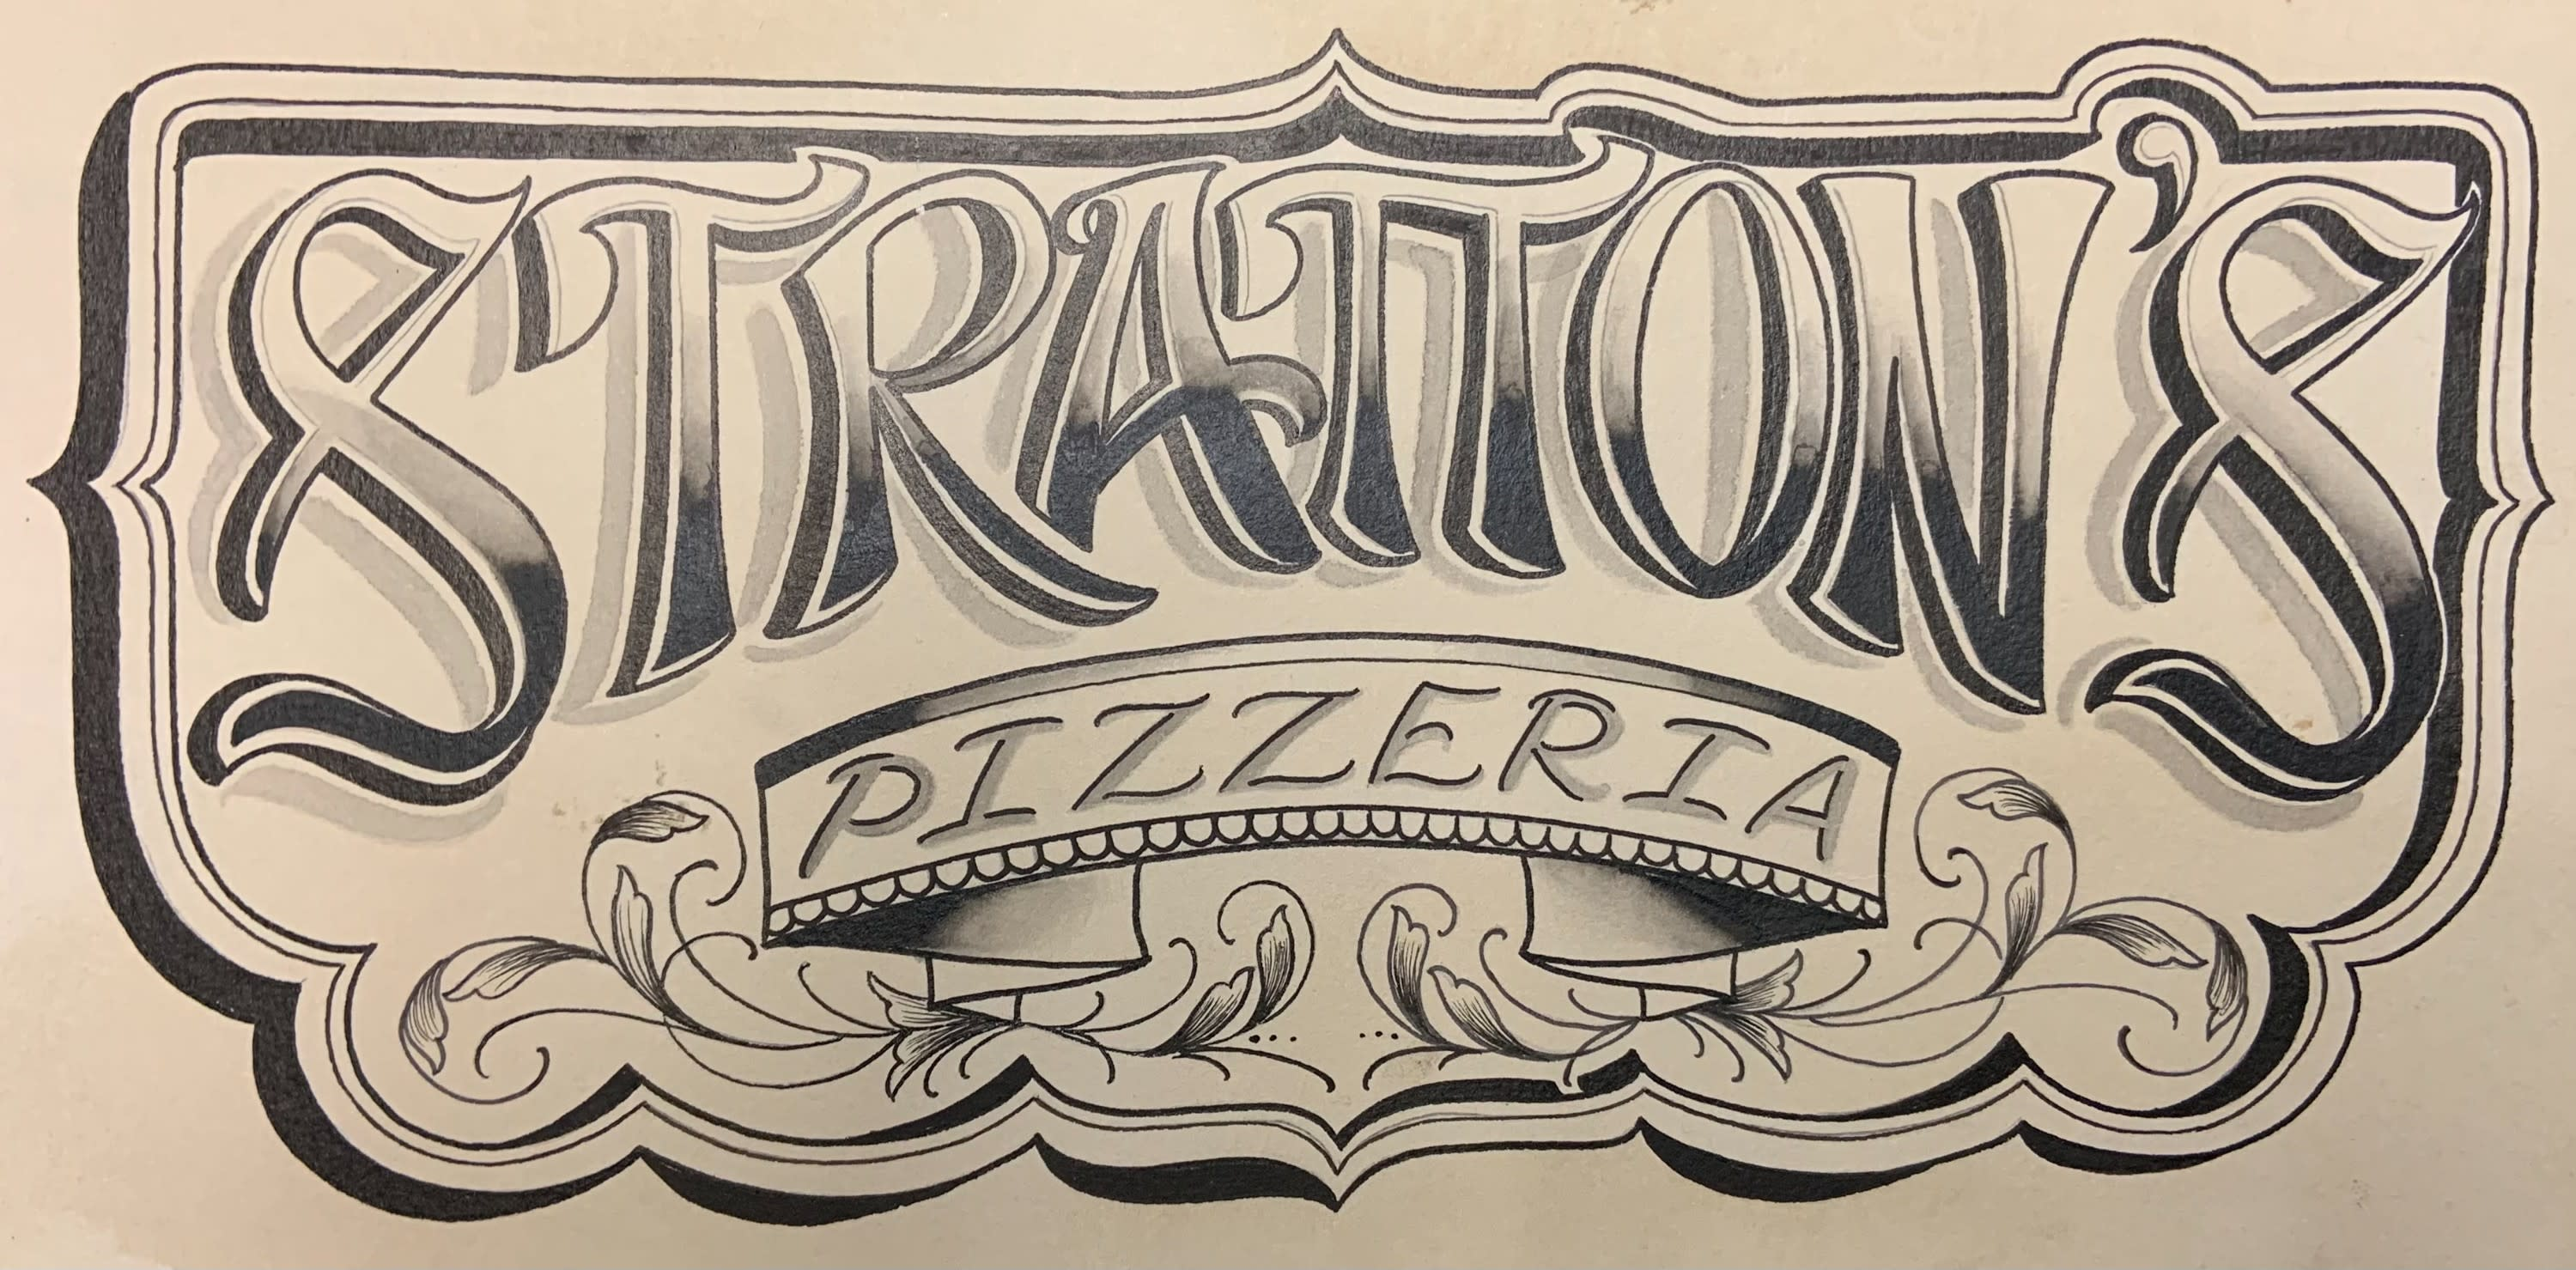 Stratton's Pizzeria logo - hand sketched in black with yellow-ish background